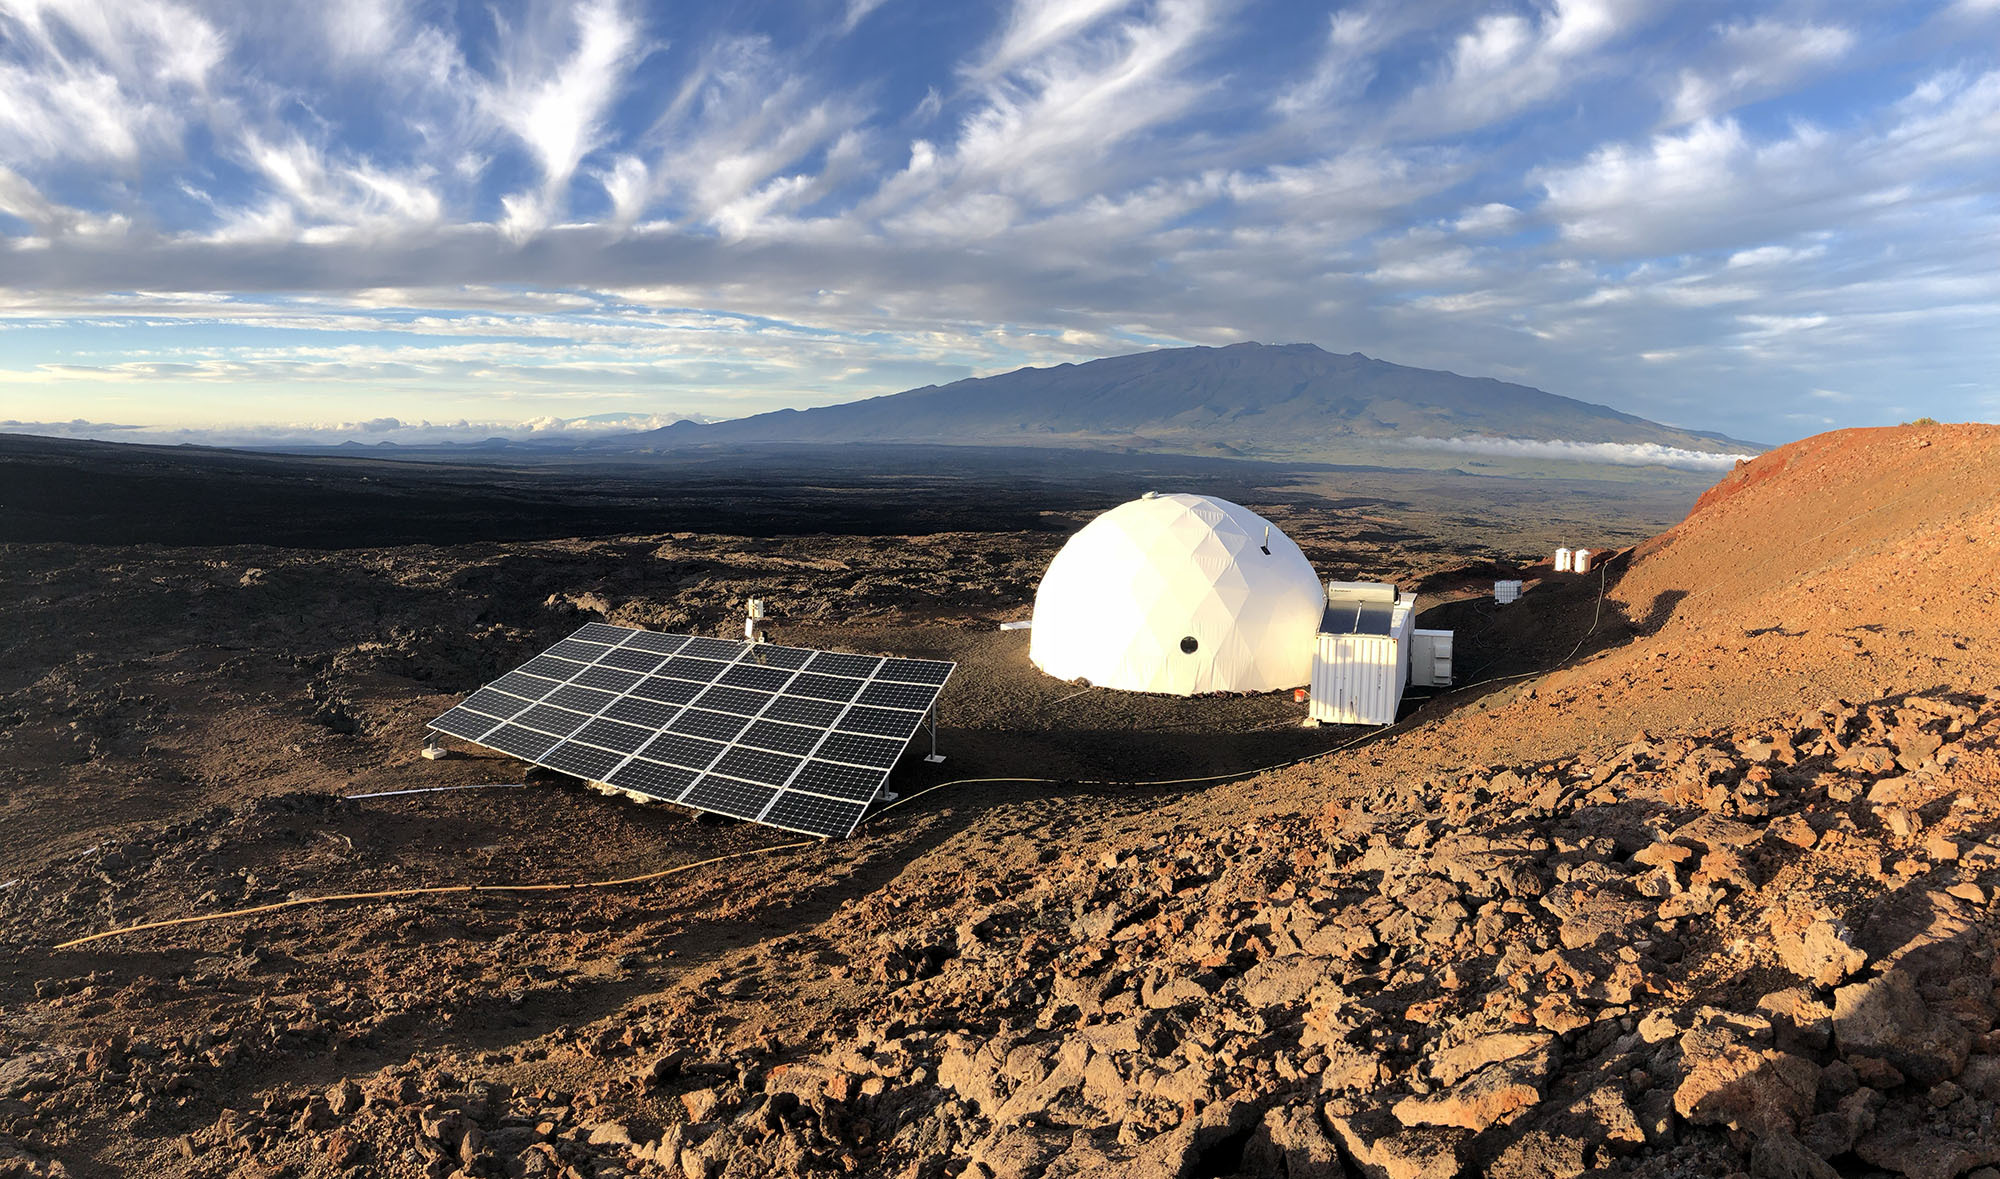 L'habitat HI-SEAS géré par l'International MoonBase Alliance sur le volcan Mauna Loa à Hawaï.